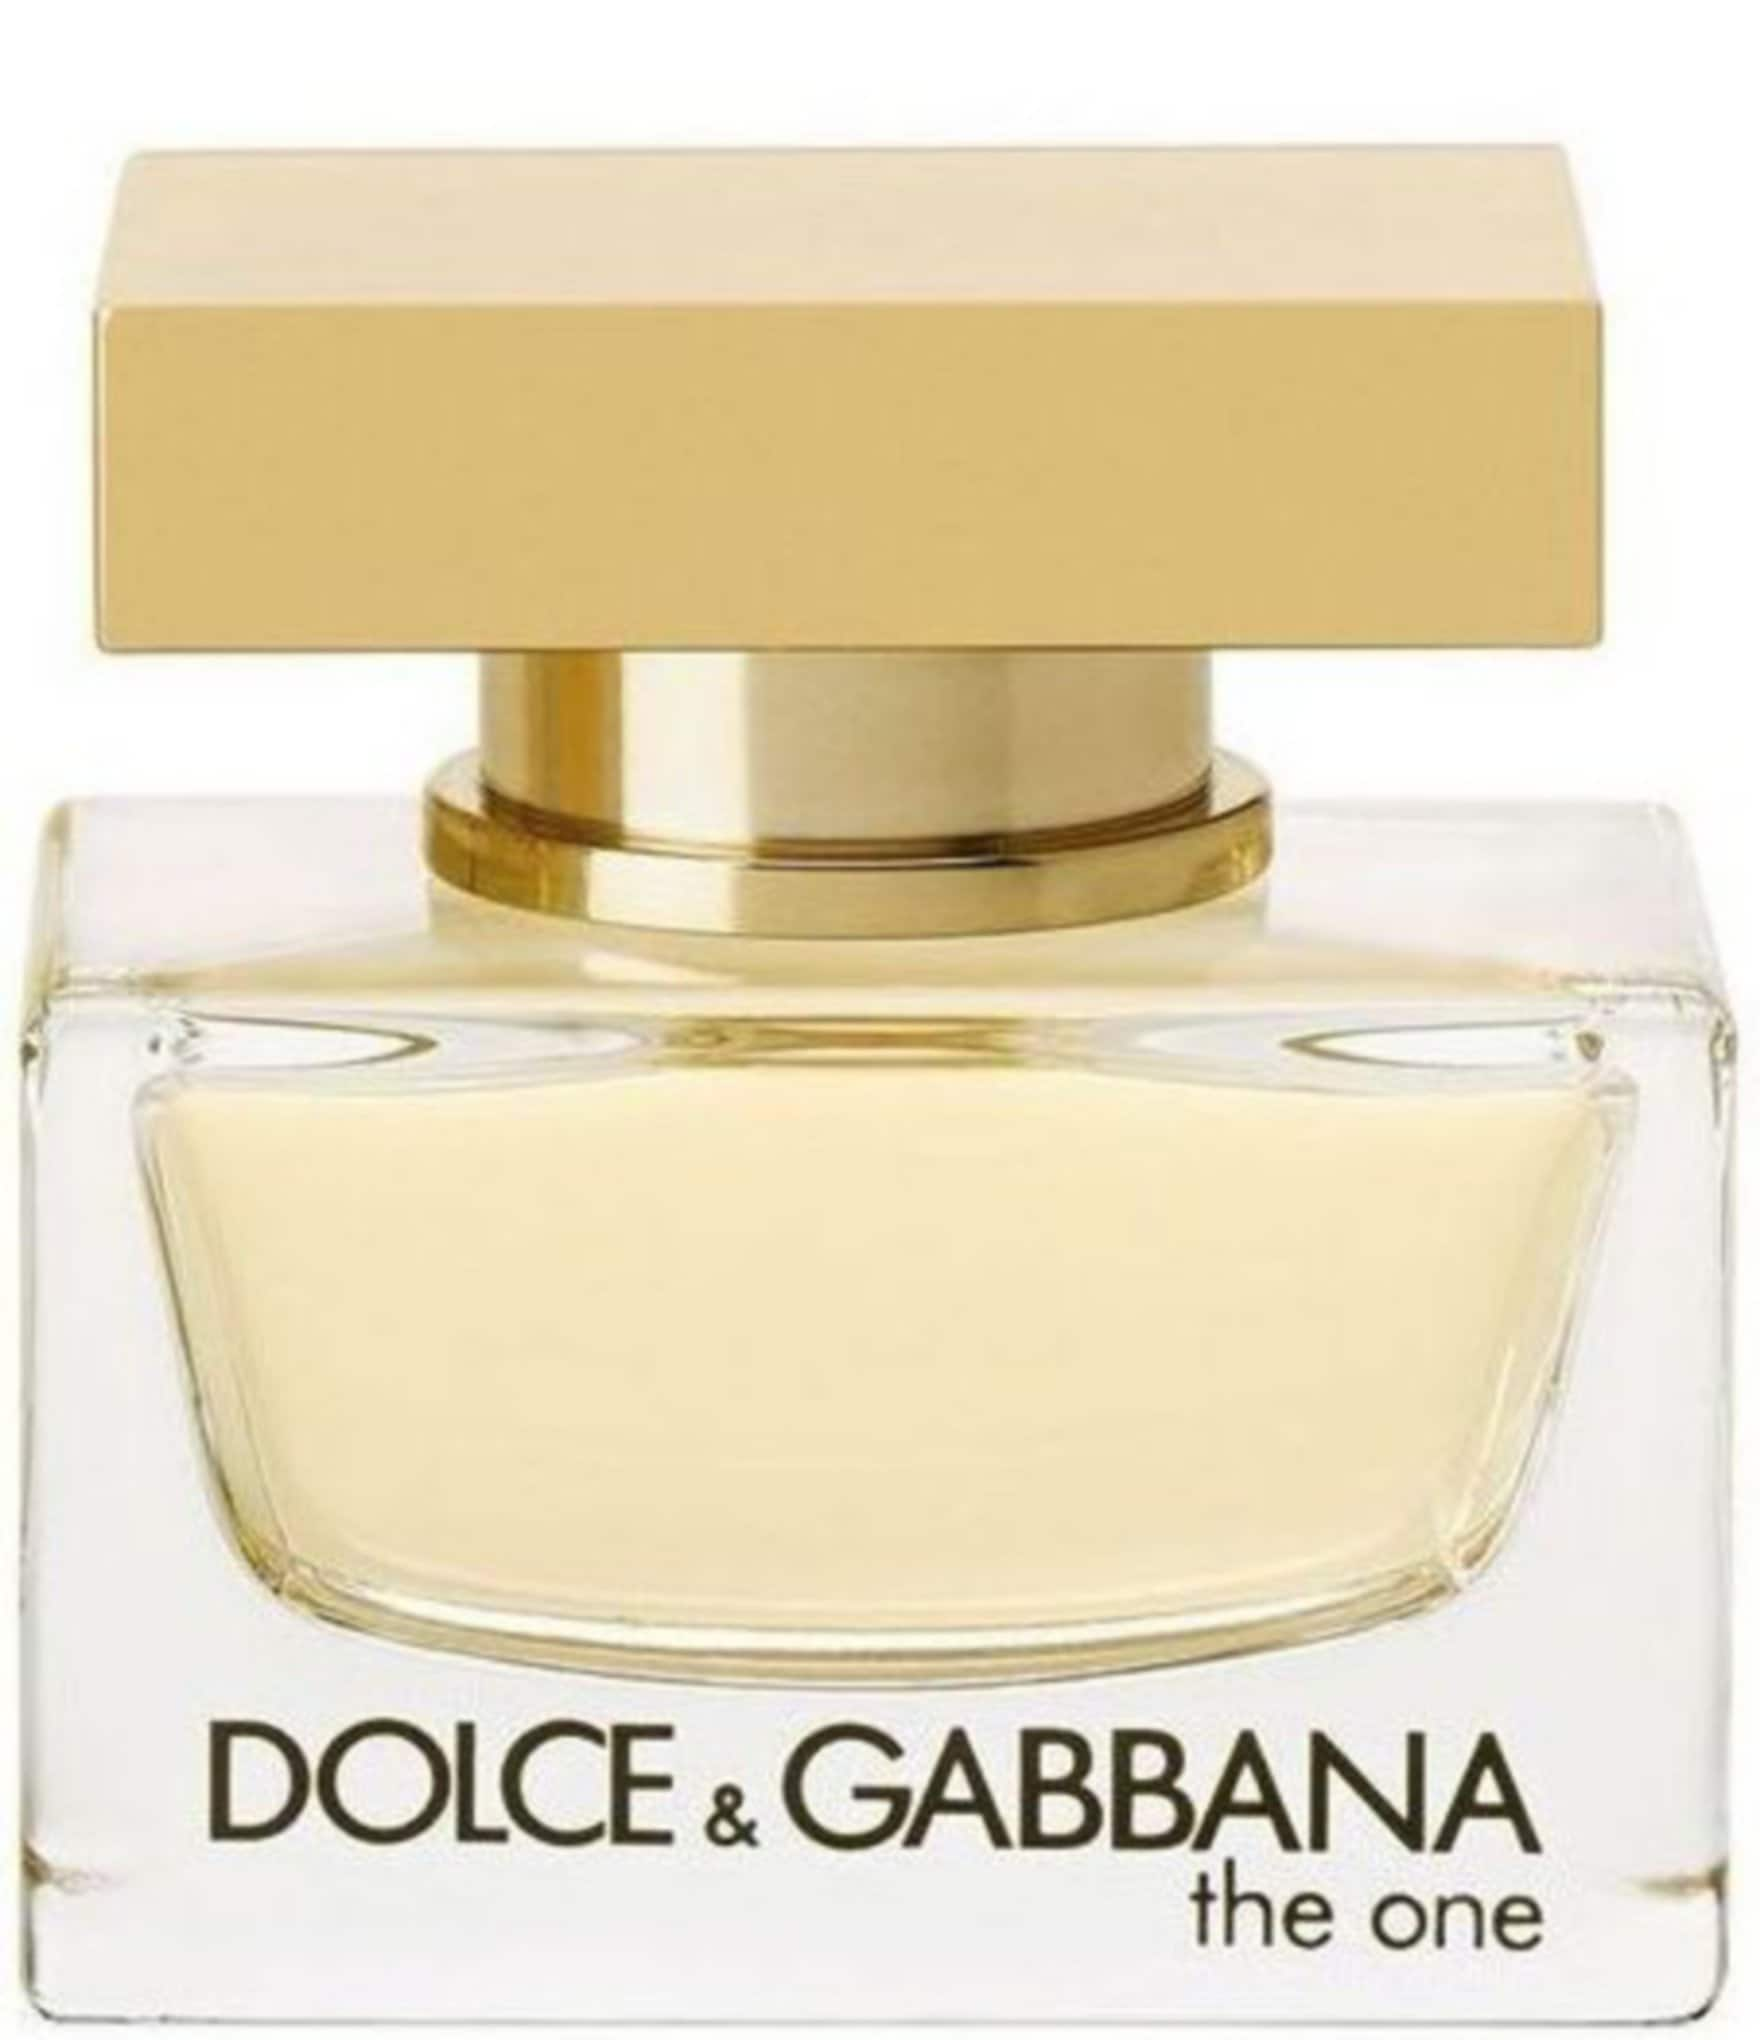 Dolce & Gabbana The One Eau de Parfum Spray | Dillard's